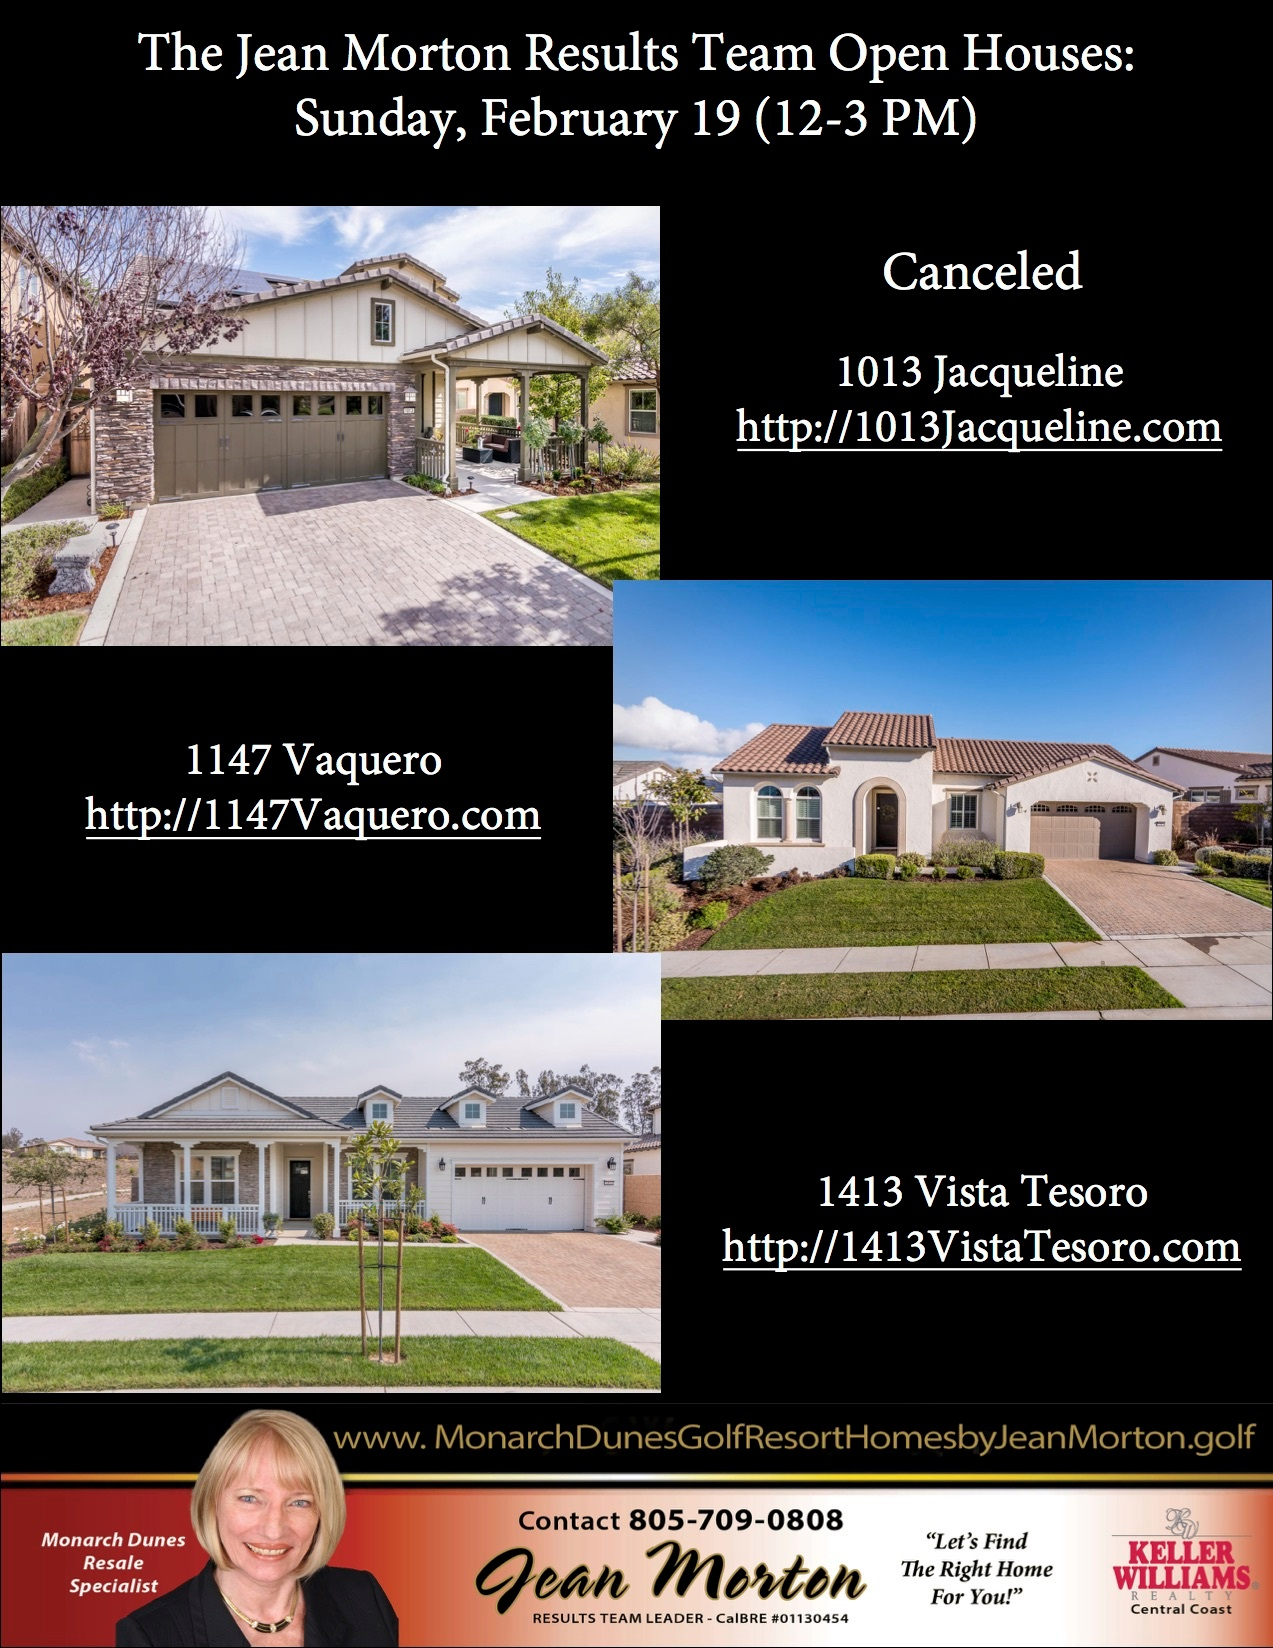 Open Houses 2-19-17 Picture